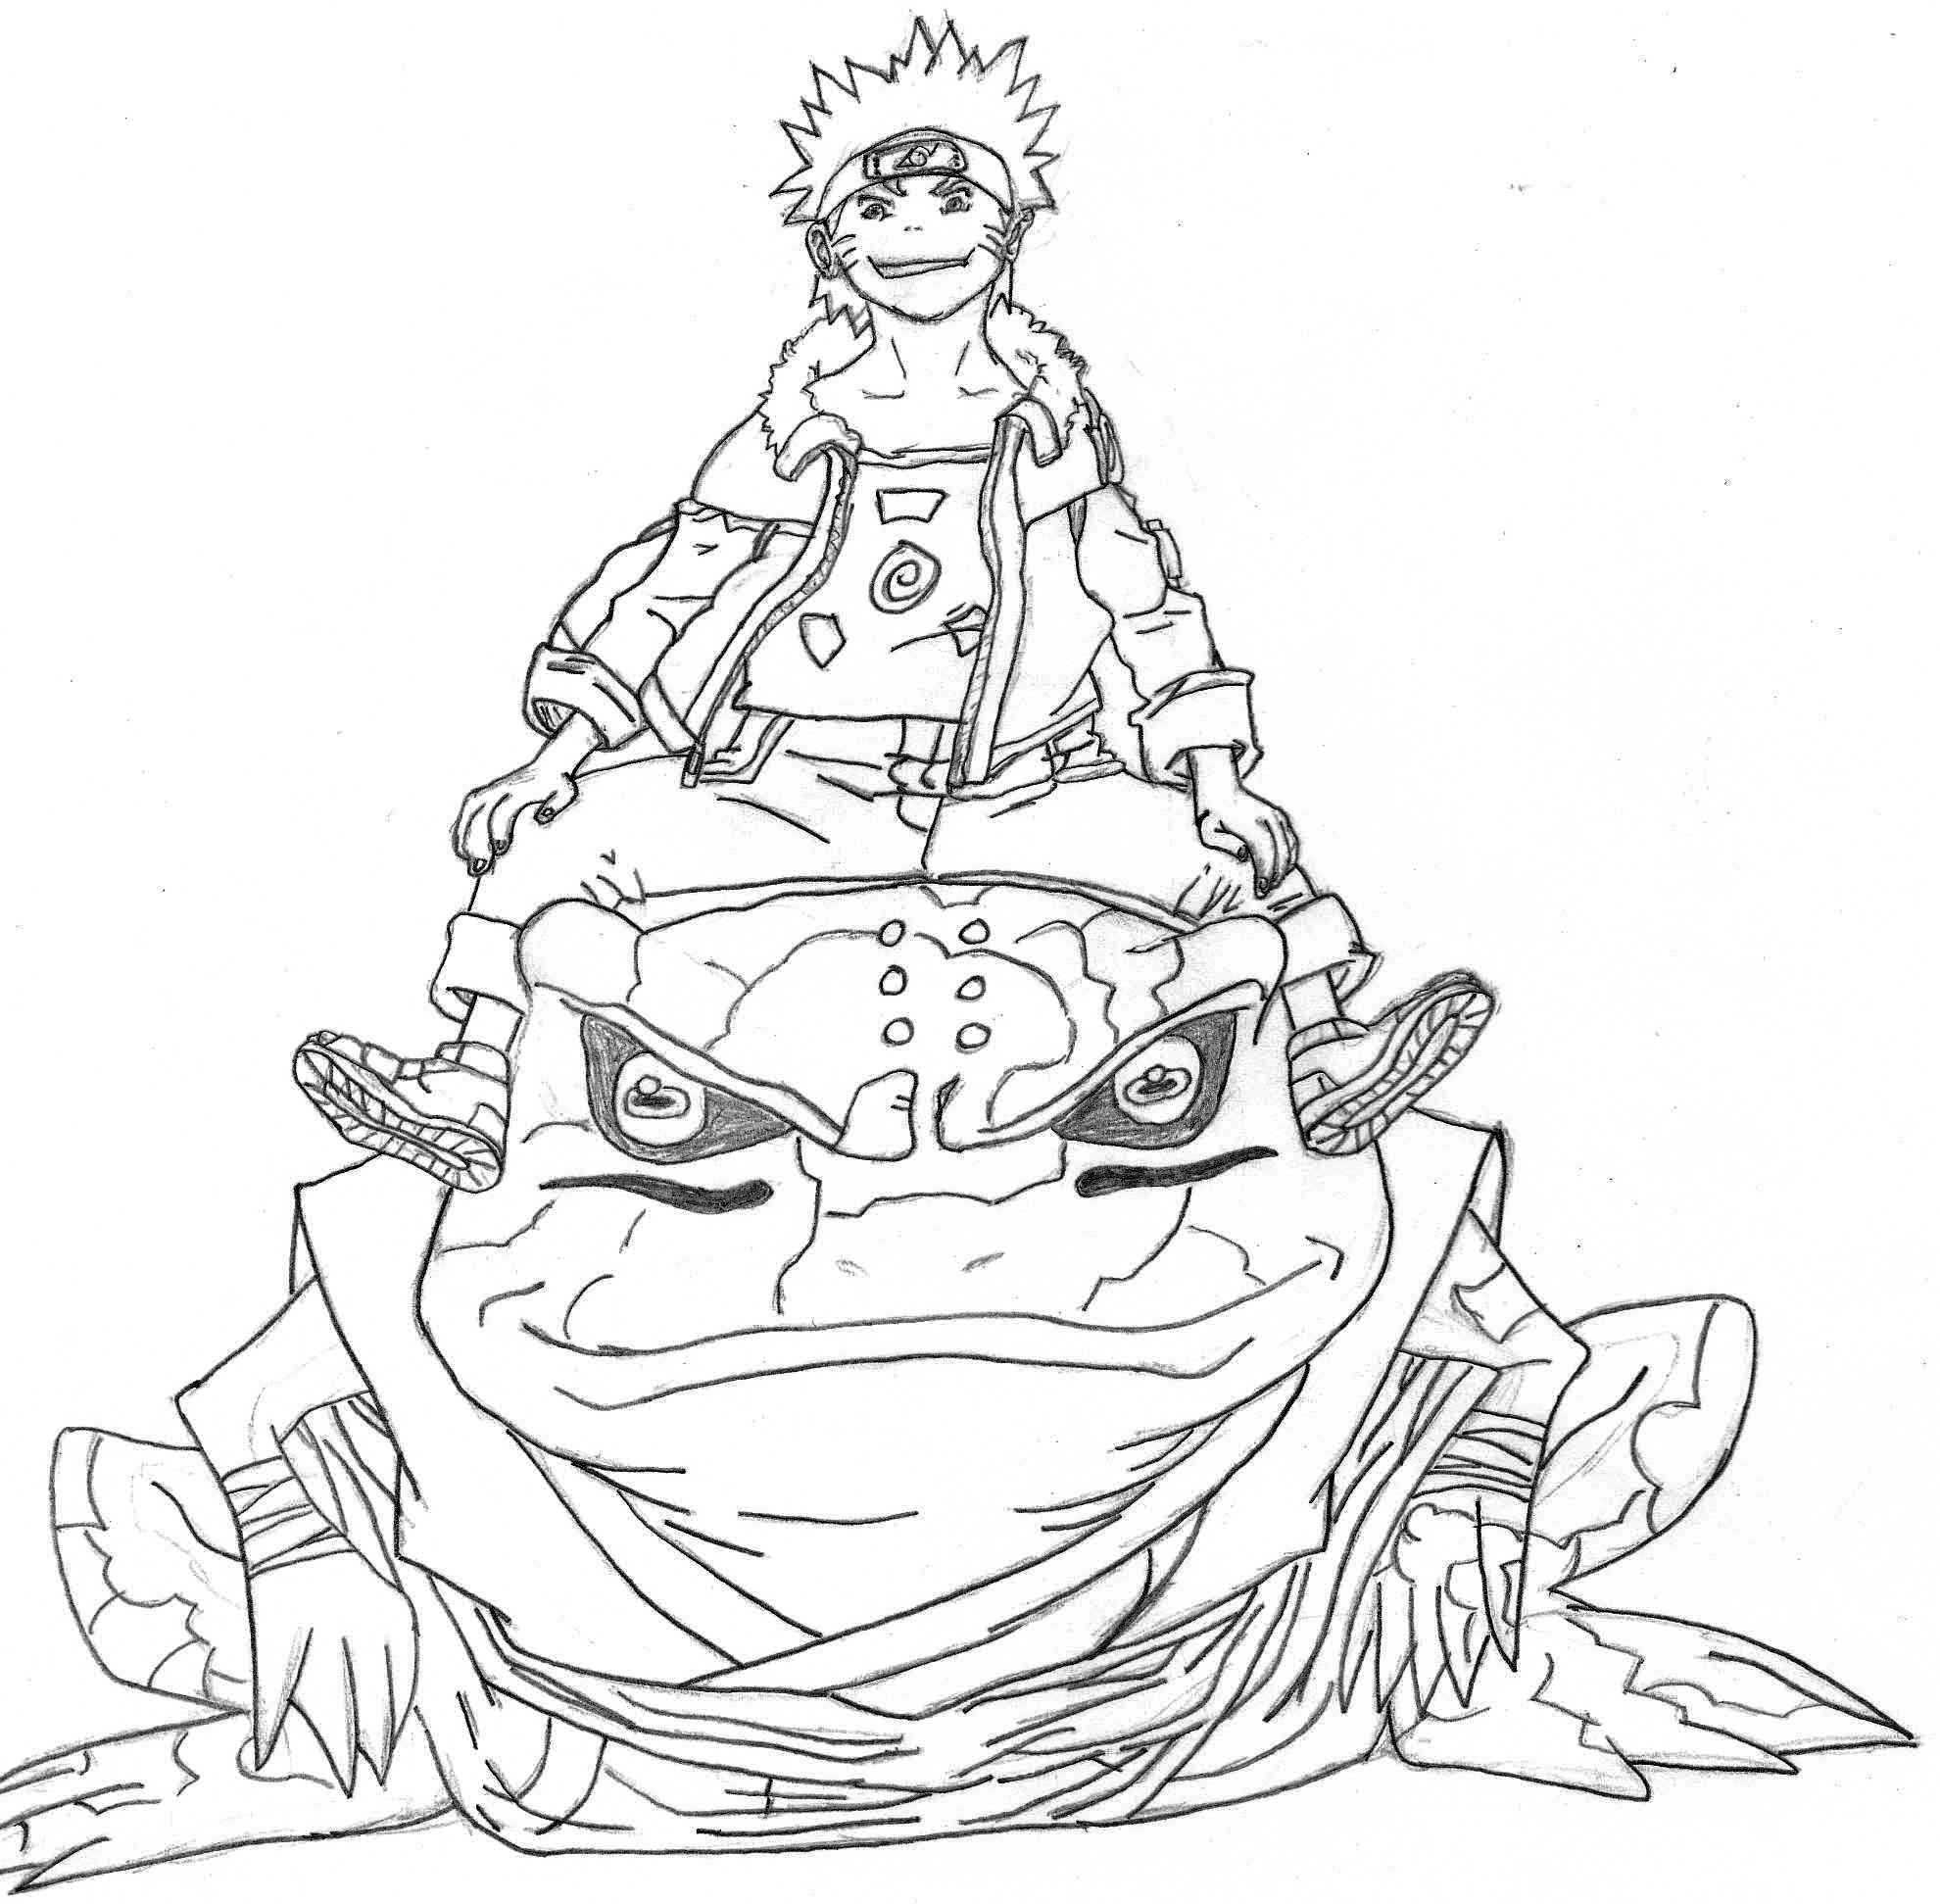 Wonderful Wallpaper Naruto Sketch - naruto_and_gamabunta_by_lukthebest-d4rxlky  Collection.jpg